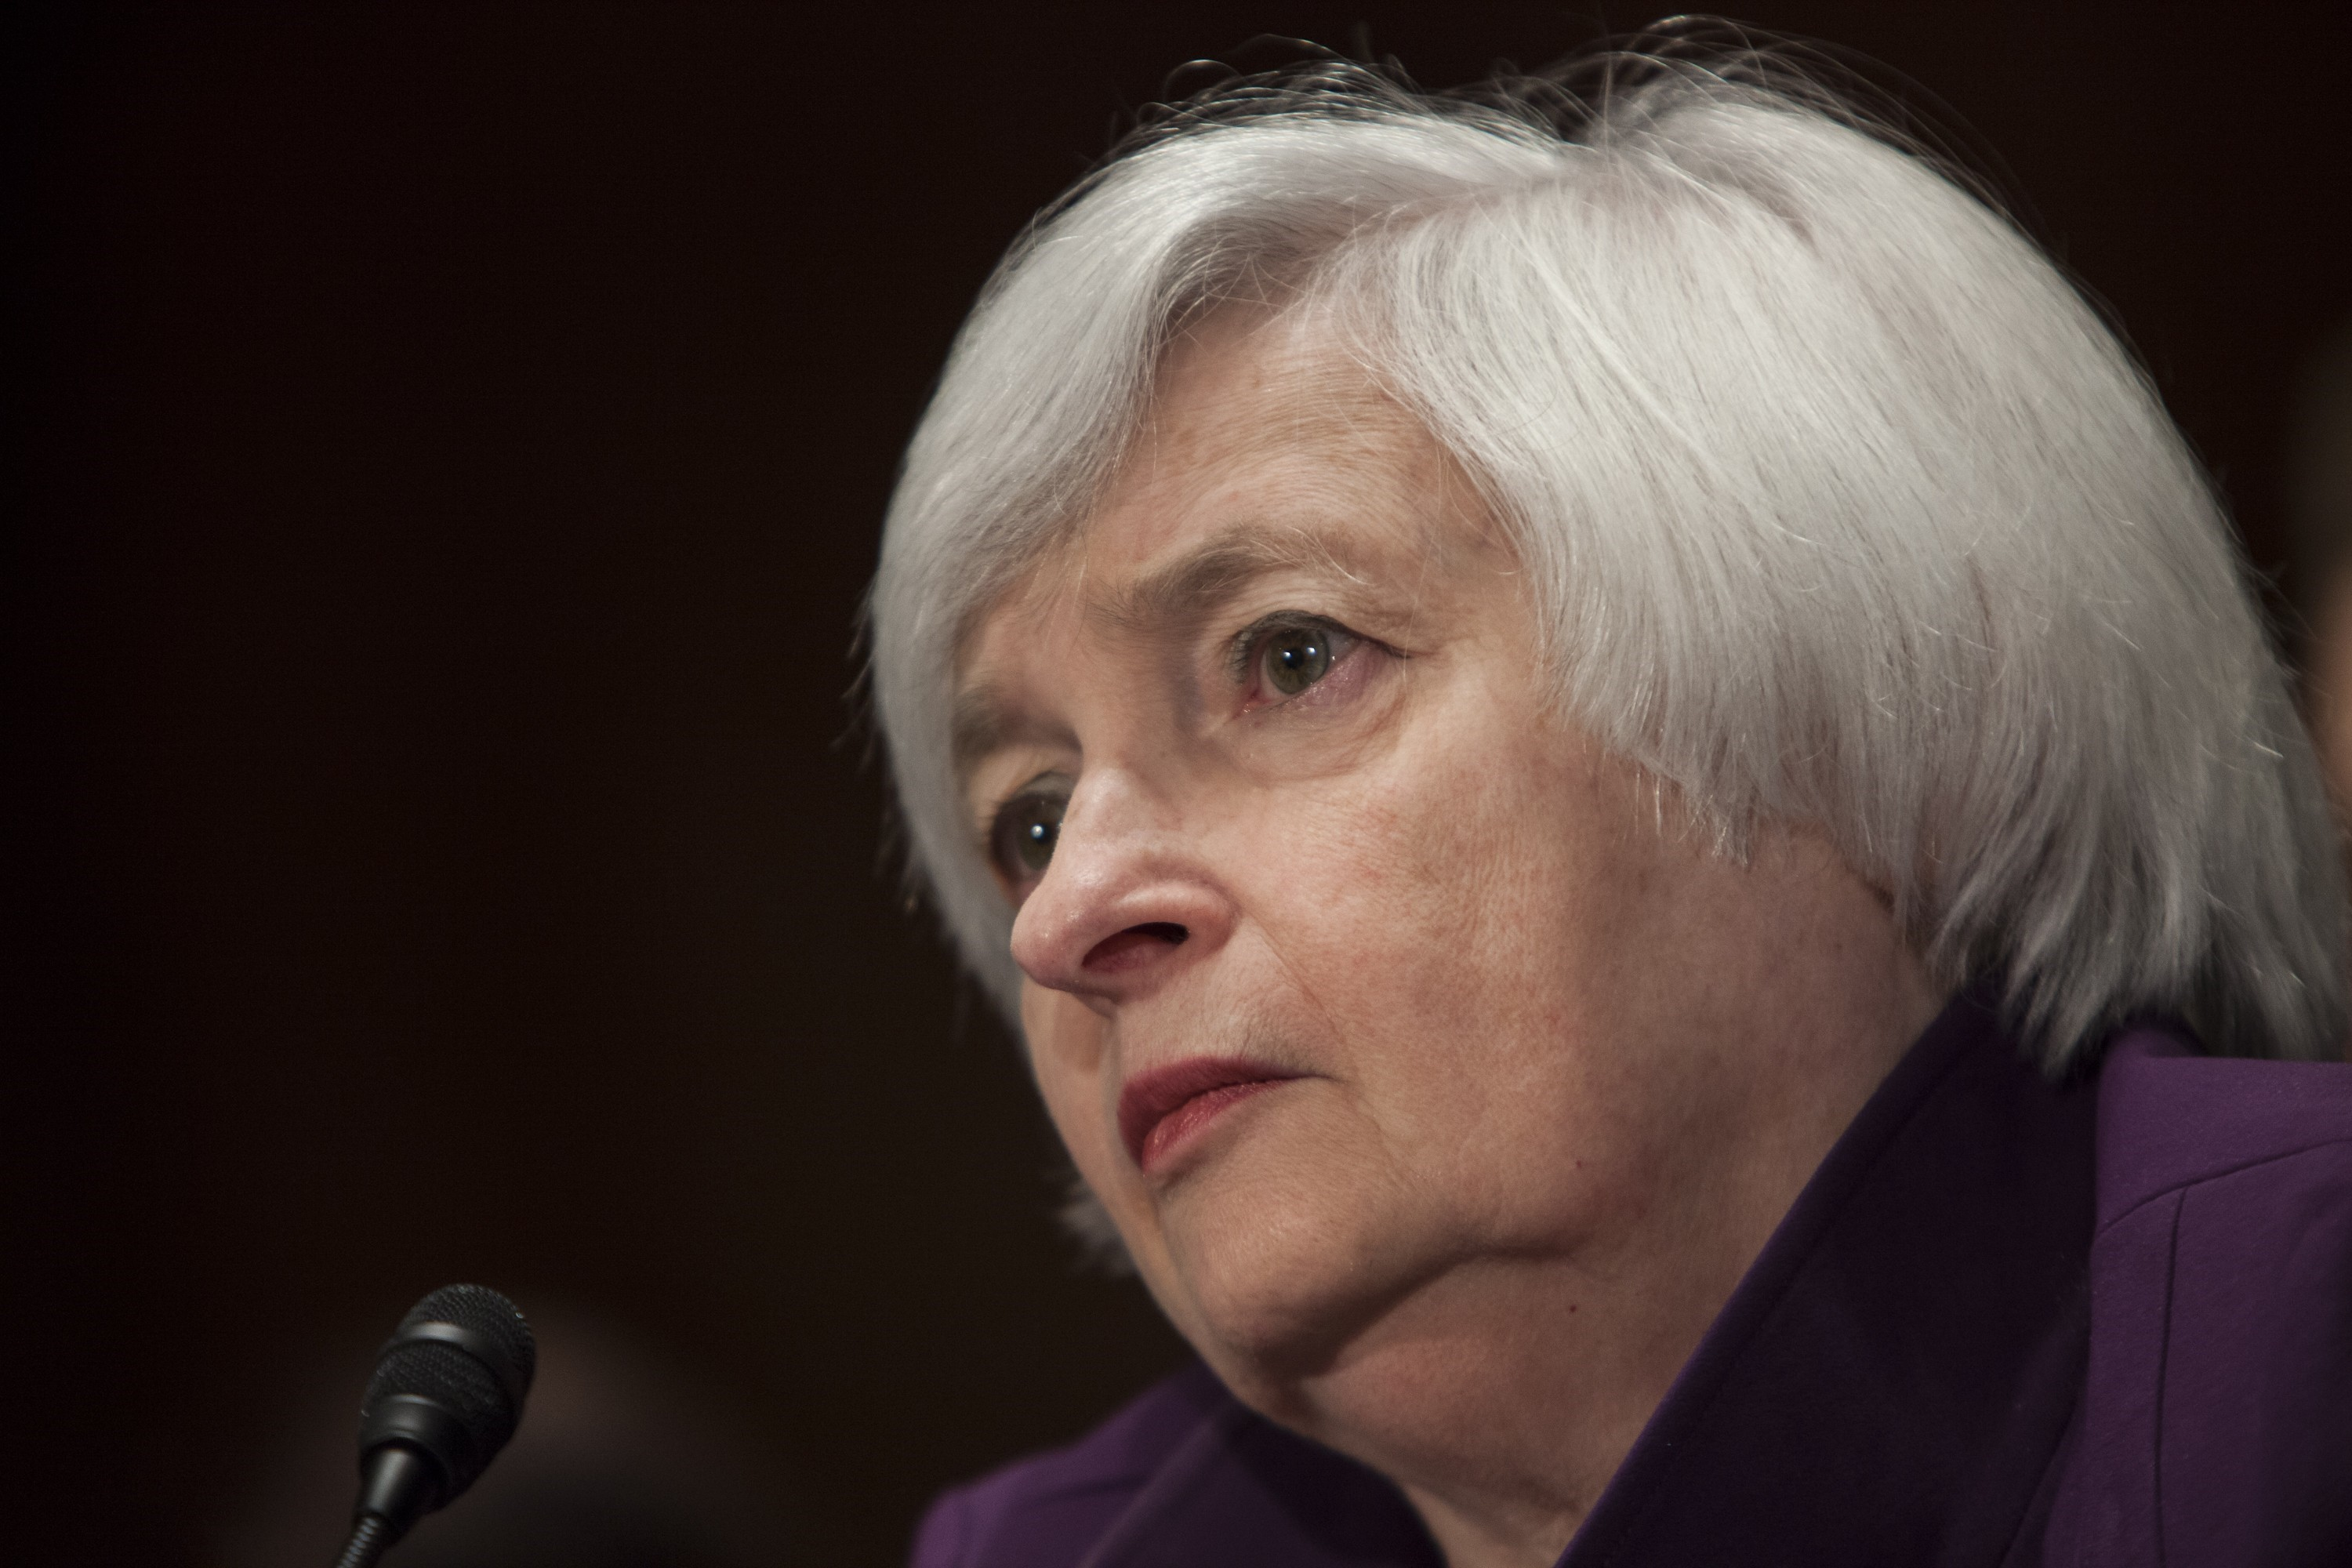 Janet Yellen testifies before the Senate Banking, Housing, and Urban Affairs Committee in Washington on July 16, 2015.